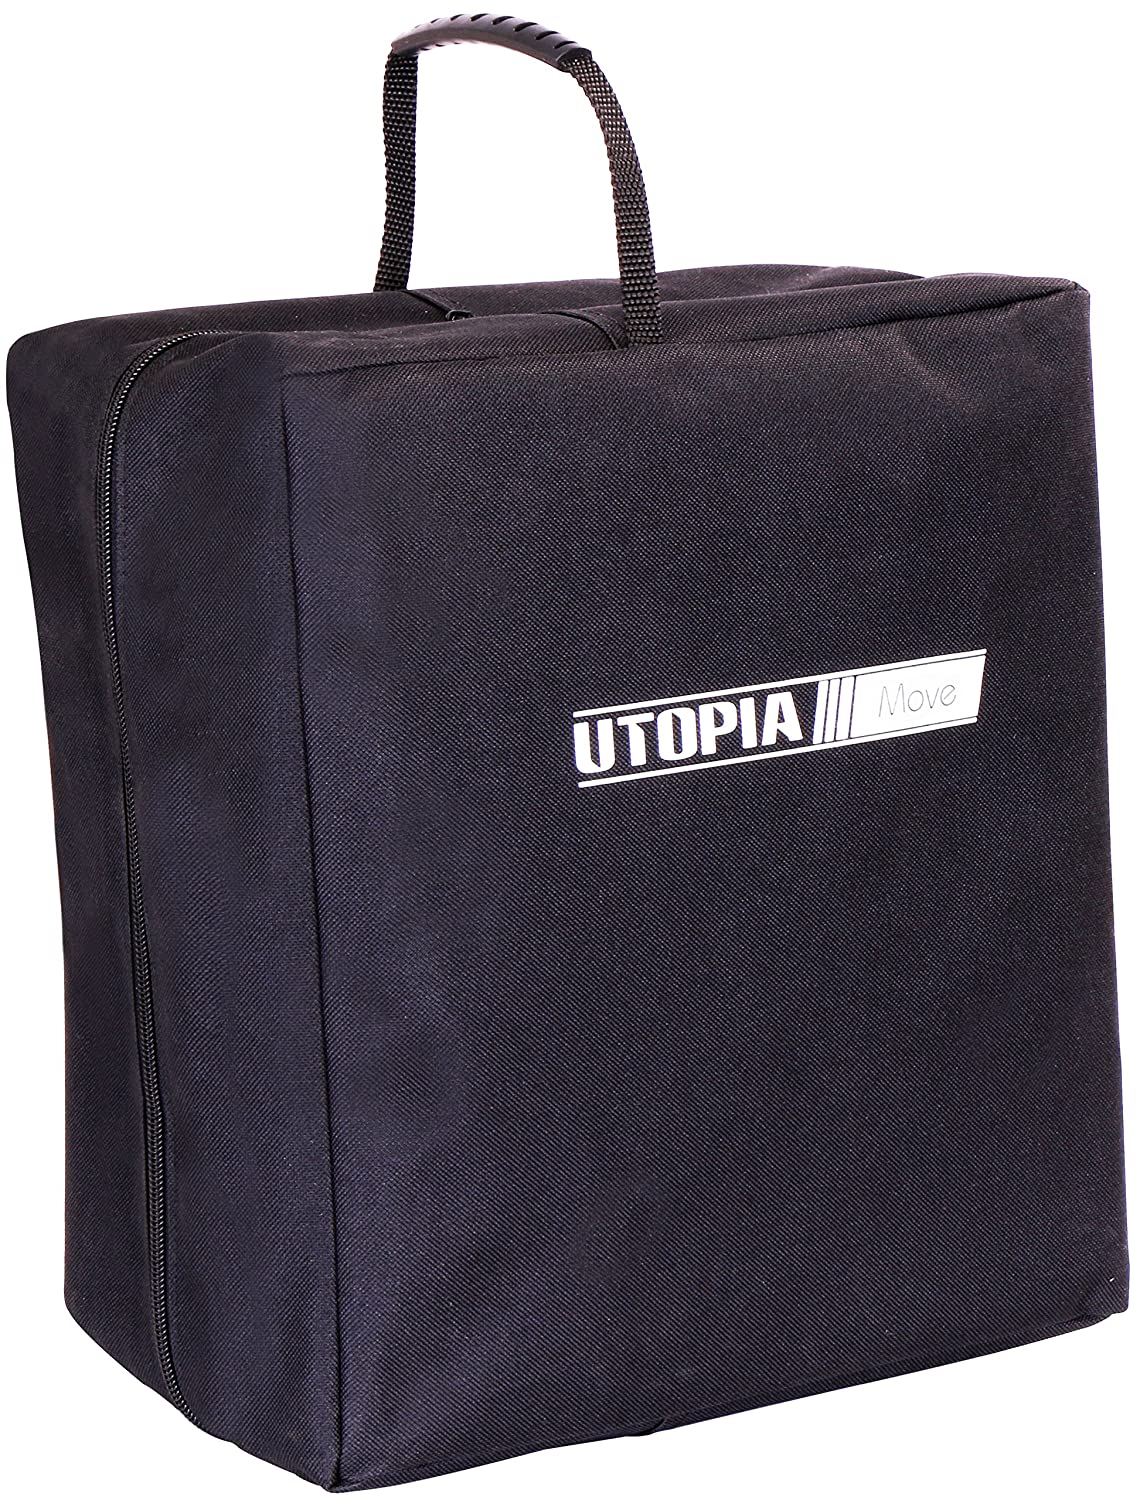 Utopia Home UH0265 Fit for Outdoor Utopia Bedding Waterproof Cargo Storage Rooftop Bag Tarpaulin Material Soft Sided Design On Top of Car Bag PP Webbing with Plastic Buckle Secure Zipper Pullers 1